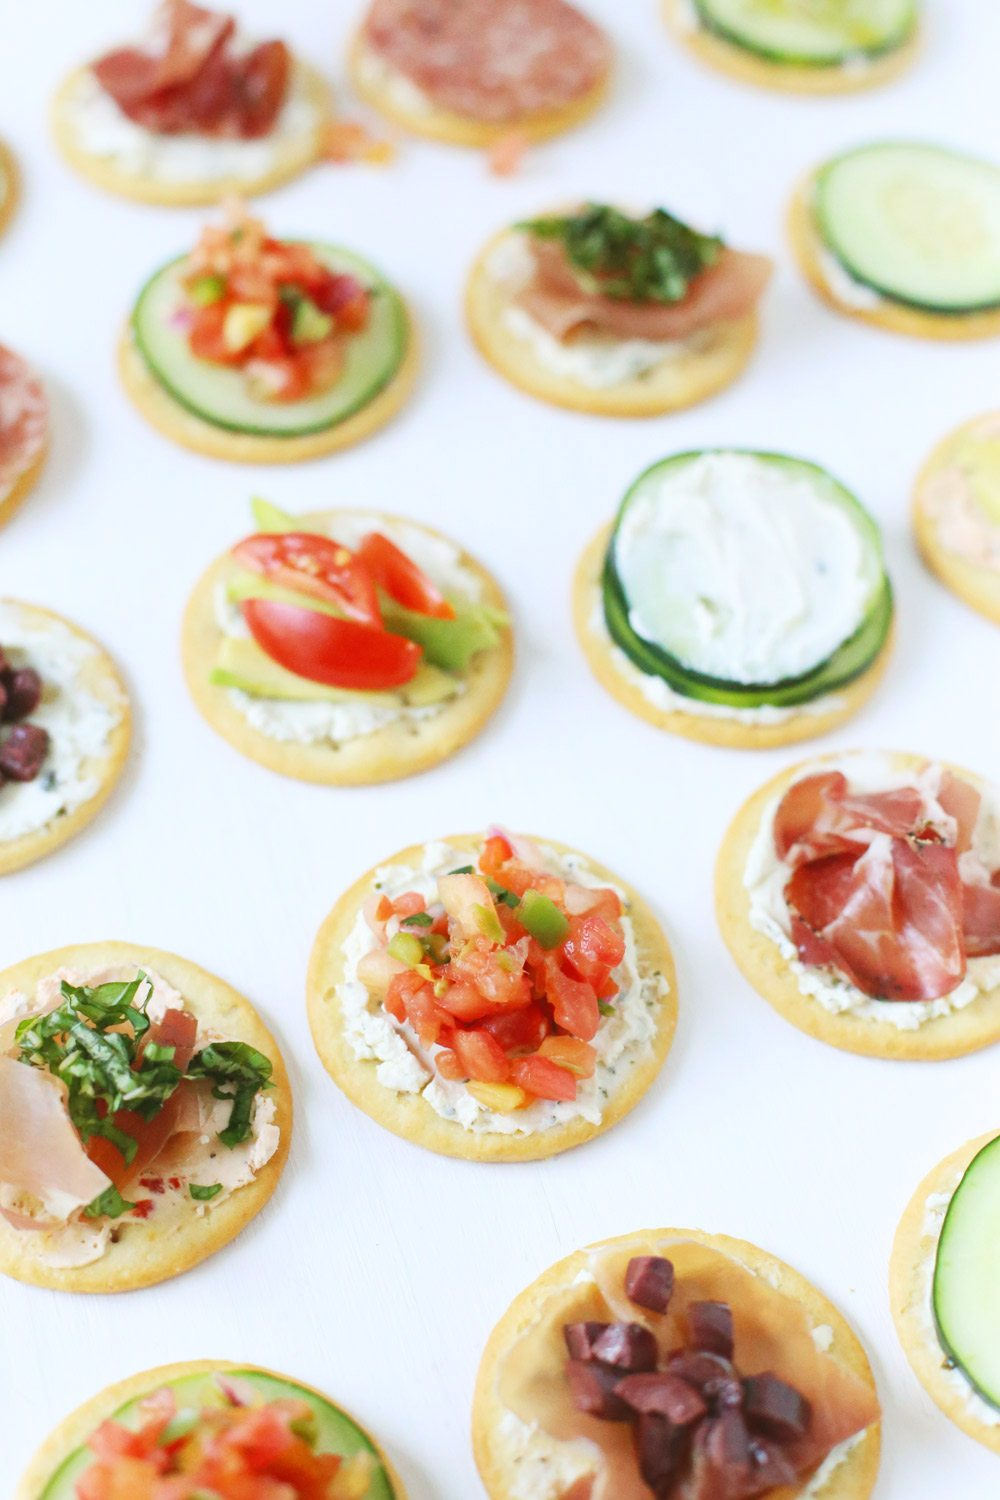 Football Game Day Snacks - Football Party Food - Recipe Ideas For Football Game Day - Appetizers - Snacks - Easy Recipes Ideas For Football Party Find this Pin and more on Food and Recipes by Kait Hanson | CommuniKait.